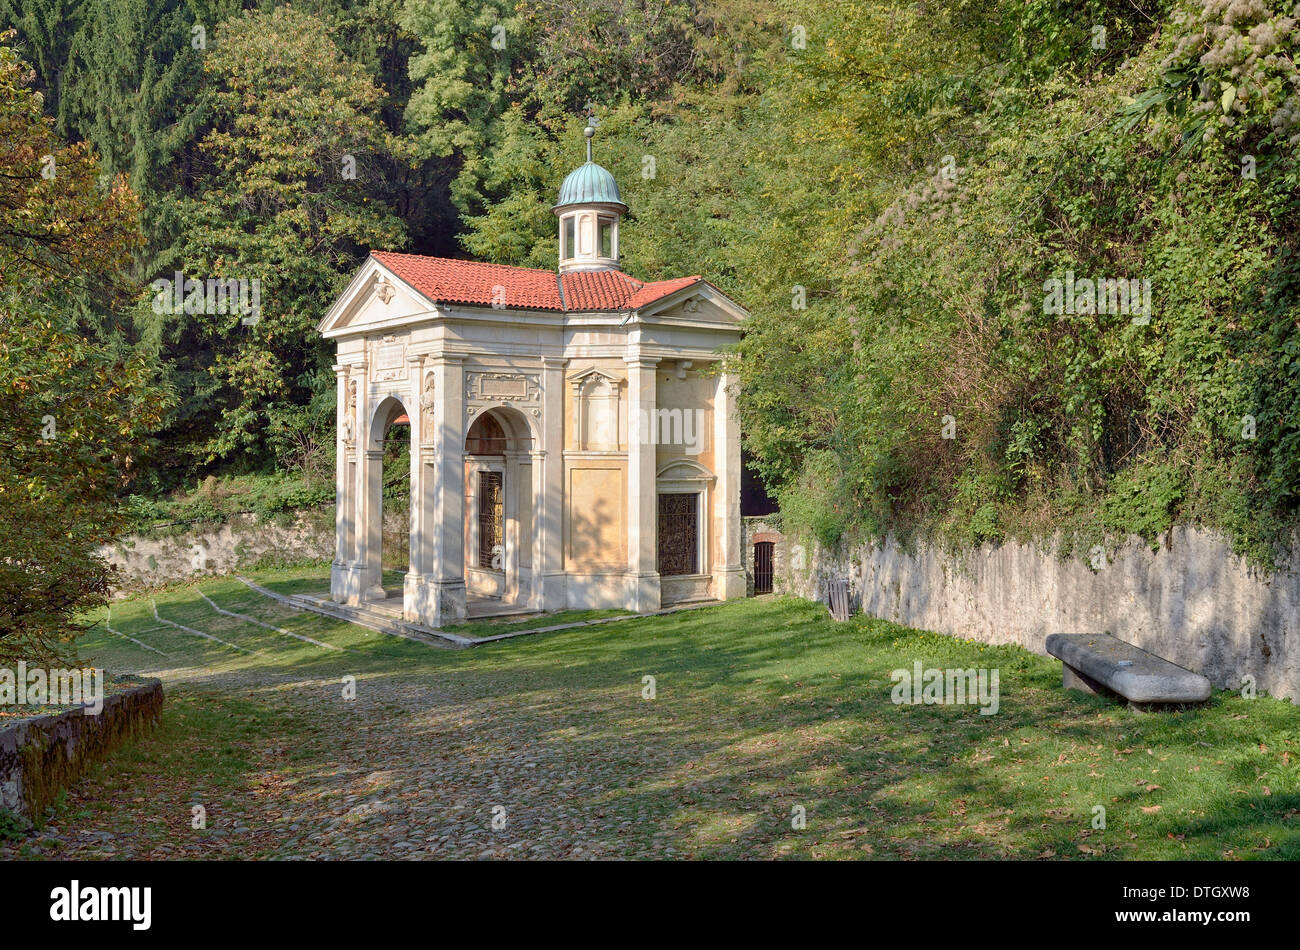 Chapel III, historic pilgrimage route to the Sanctuary of Santa Maria del Monte on the Sacro Monte di Varese or Sacred Mount of - Stock Image